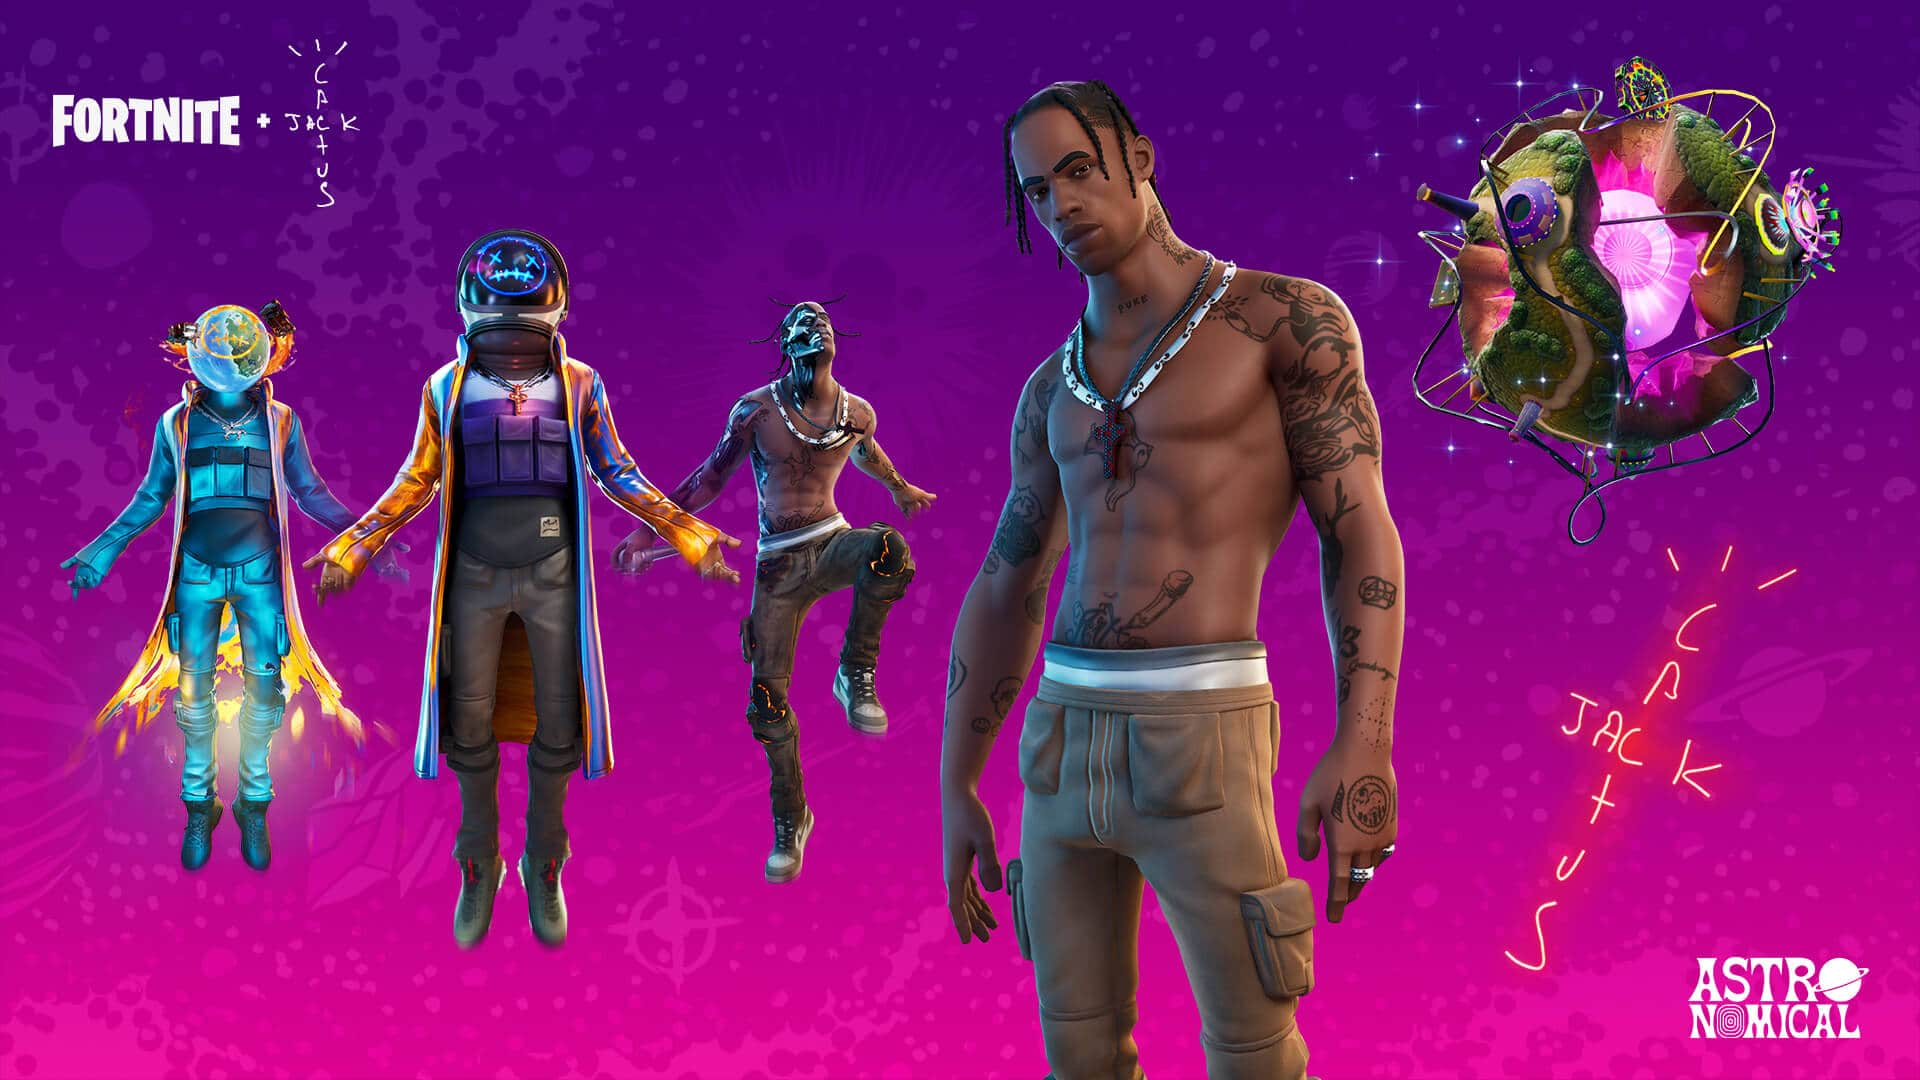 Travis Scott Fortnite Skin Will Be Available In Tonights S Item Shop 21st 22nd April Fortnite Insider